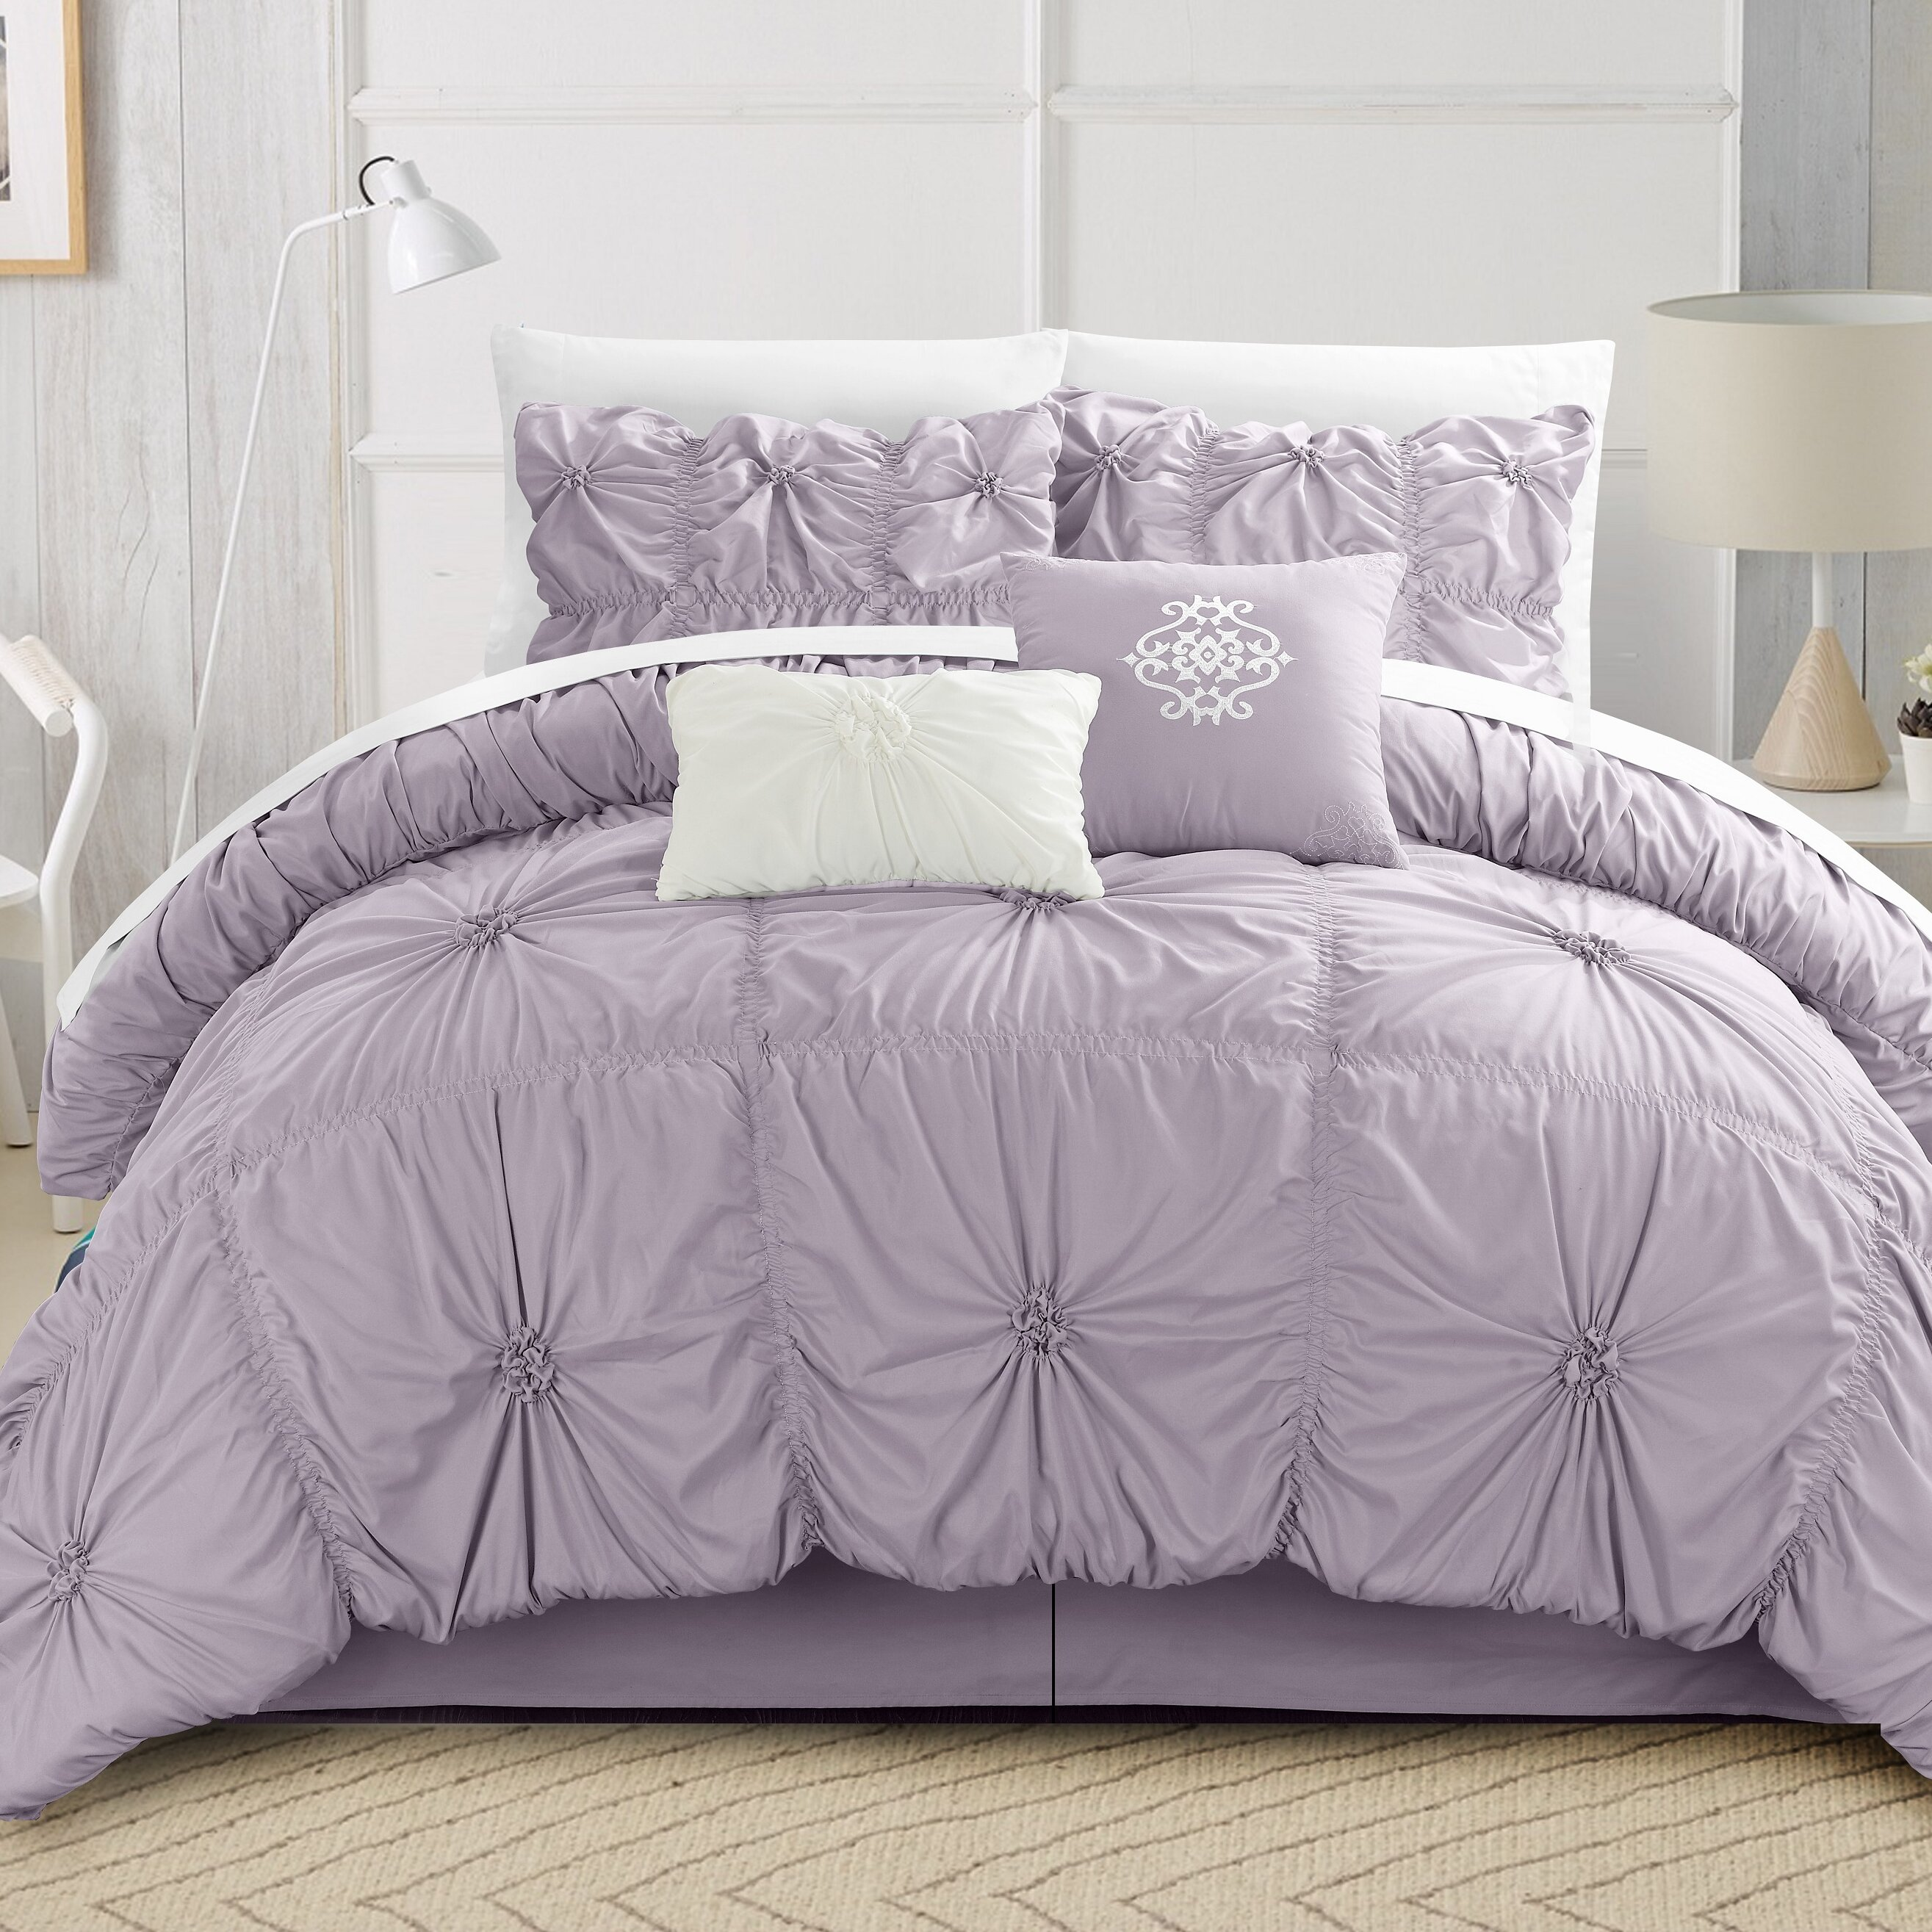 waterford purple p set by linens steel linen prudence bedding comforter